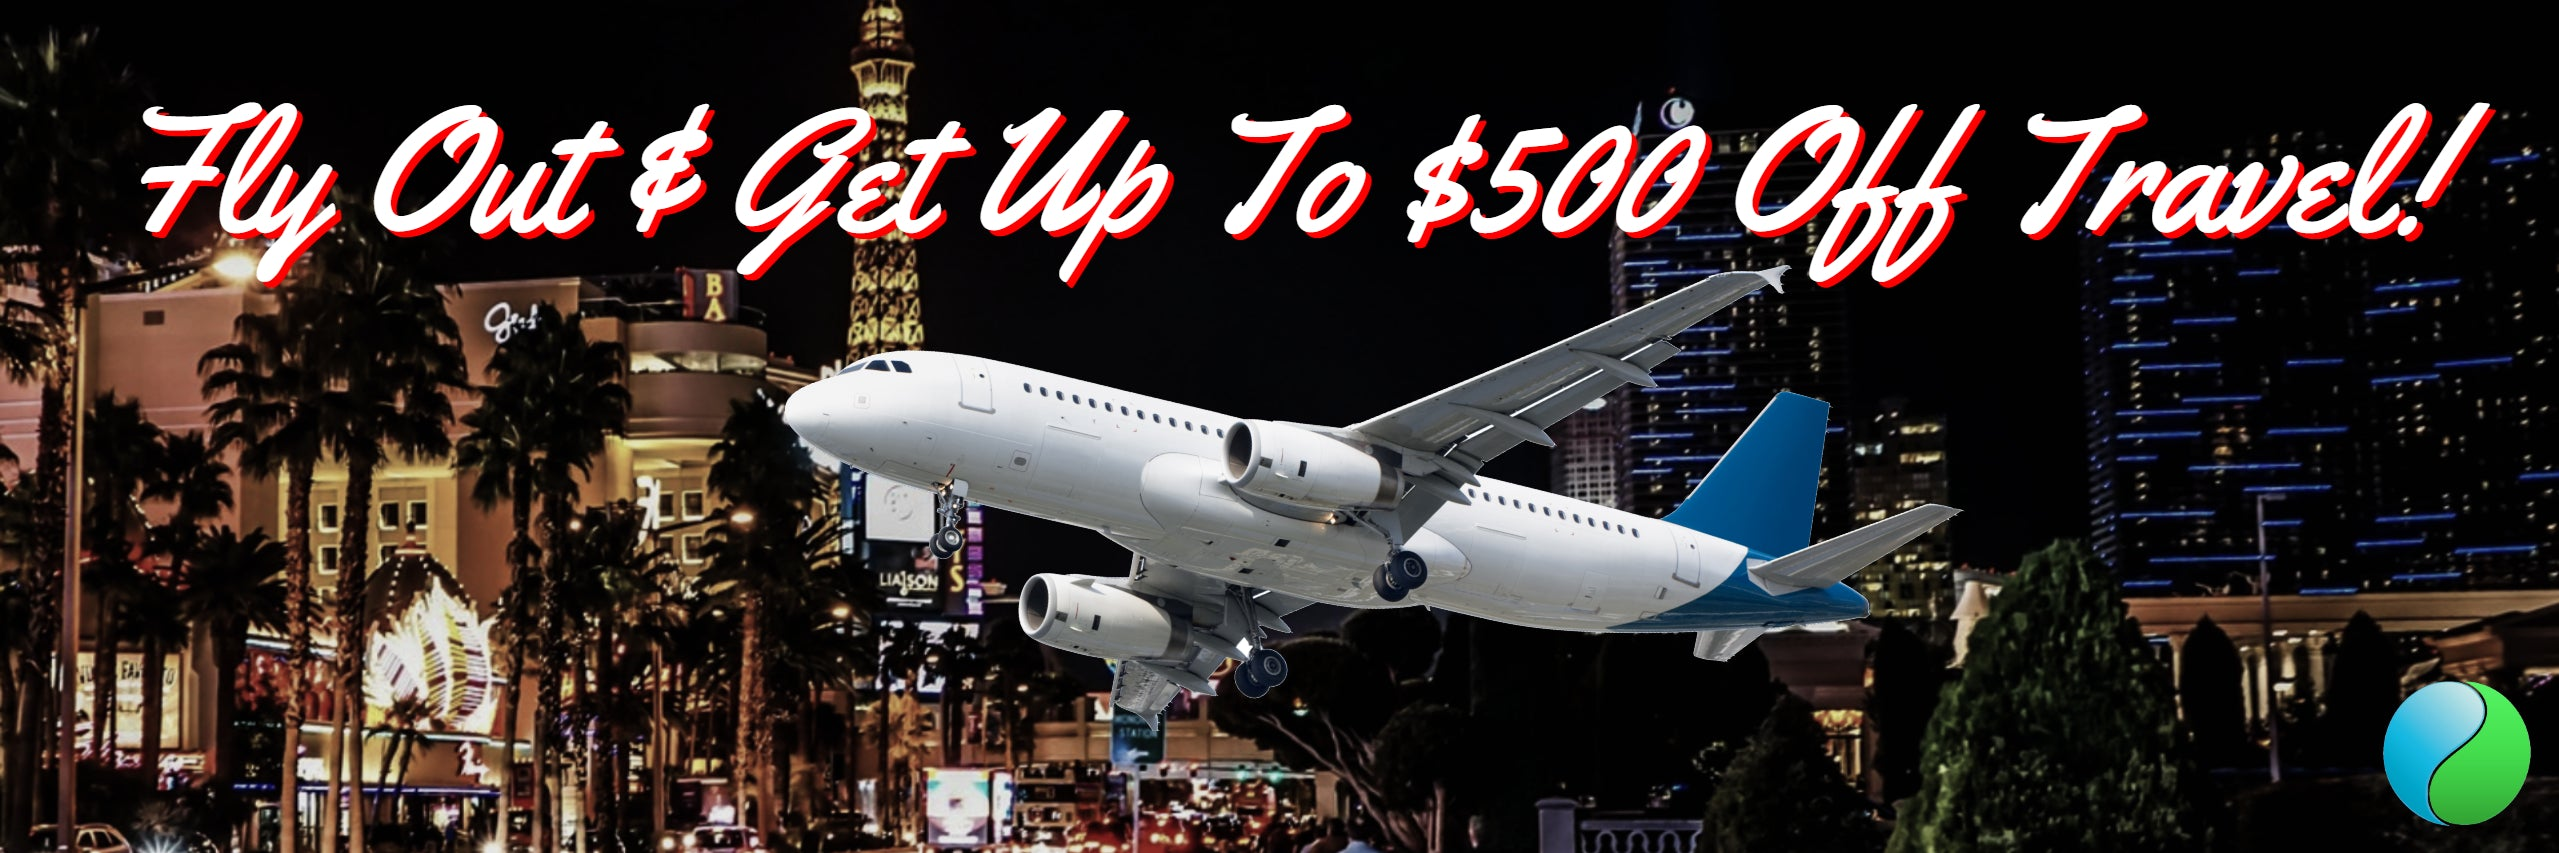 fly out to vegas promo